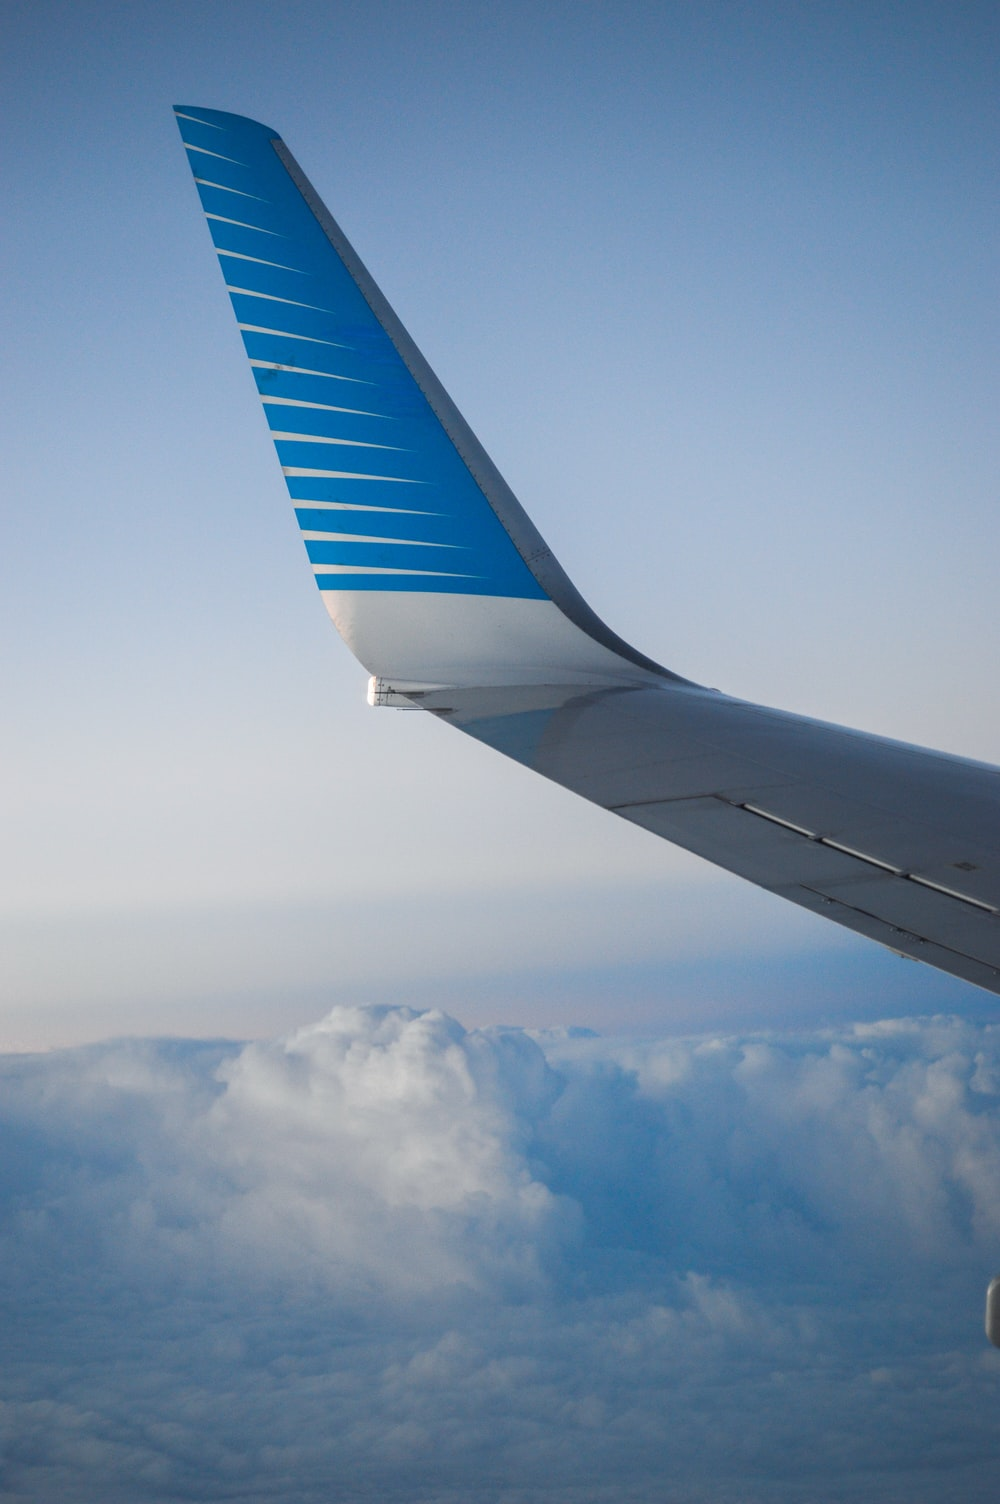 airplane's blue and gray left wing